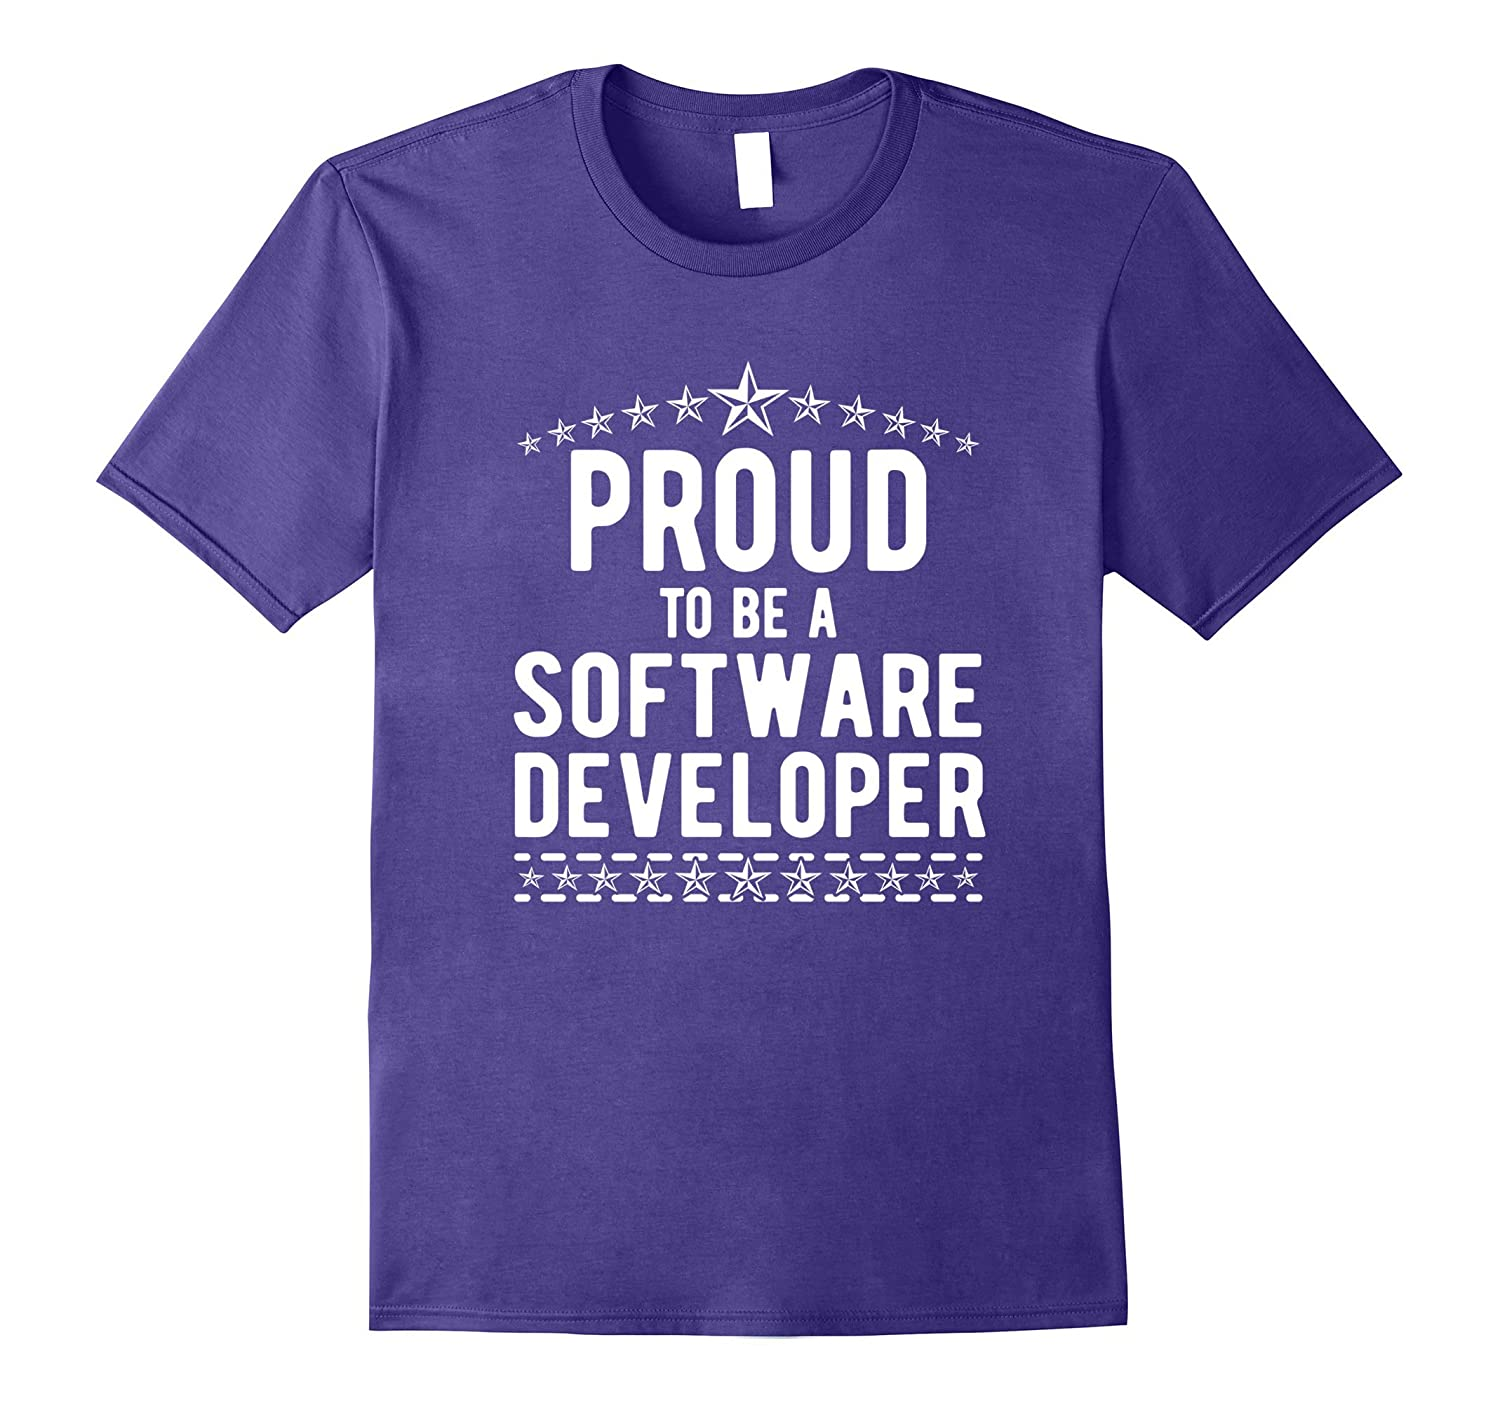 The Official Proud to Be a Software Developer T-Shirt-PL